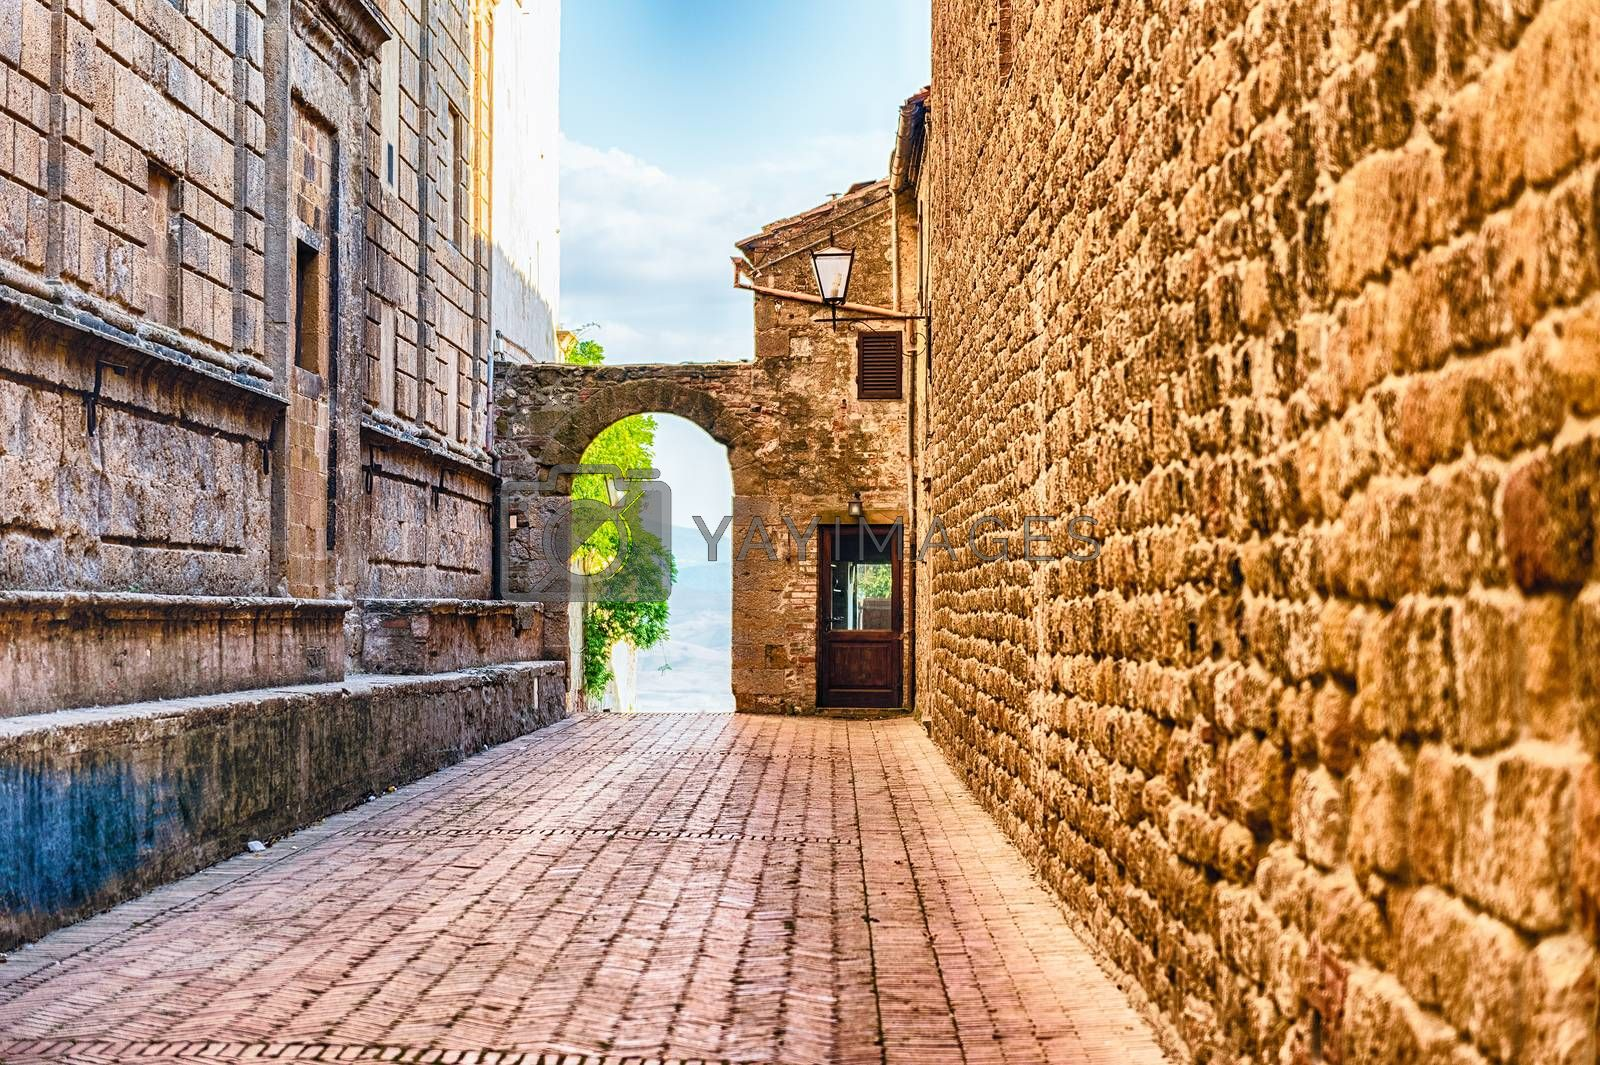 Medieval scenic streets in the town of Pienza, province of Siena, Tuscany, Italy